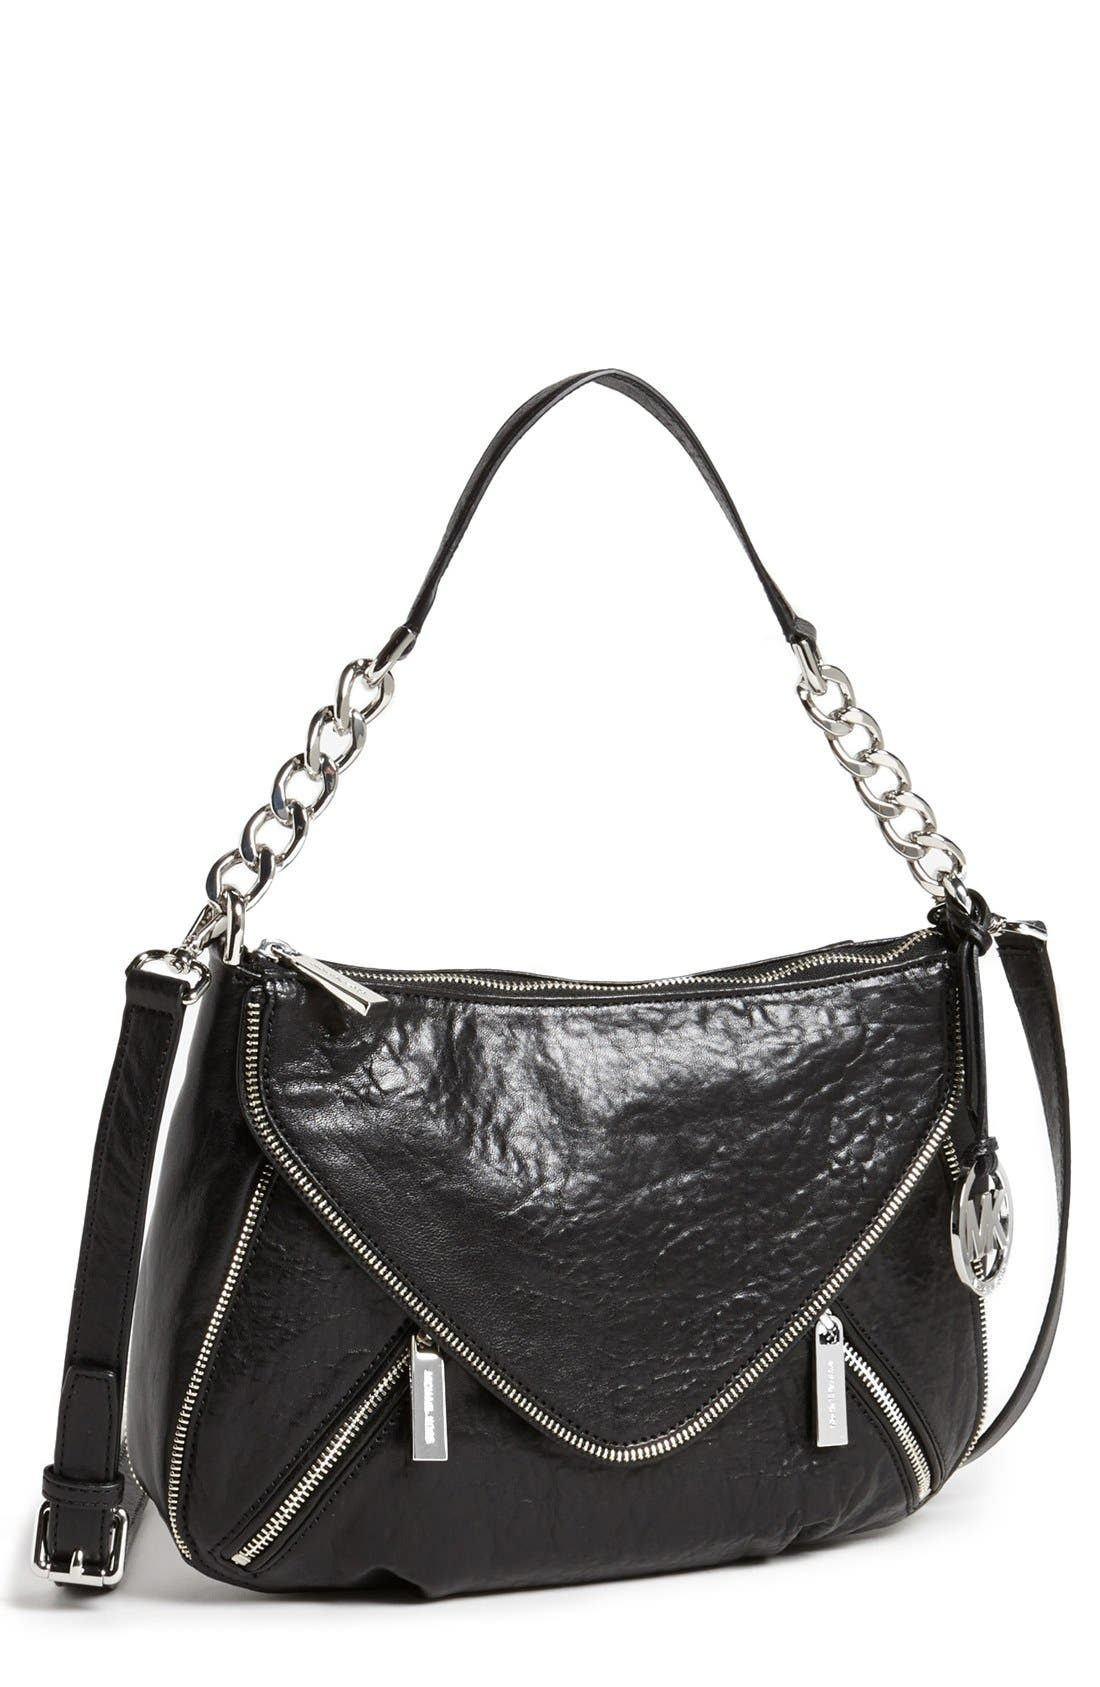 Alternate Image 1 Selected - MICHAEL Michael Kors 'Odette - Medium' Leather Crossbody Bag